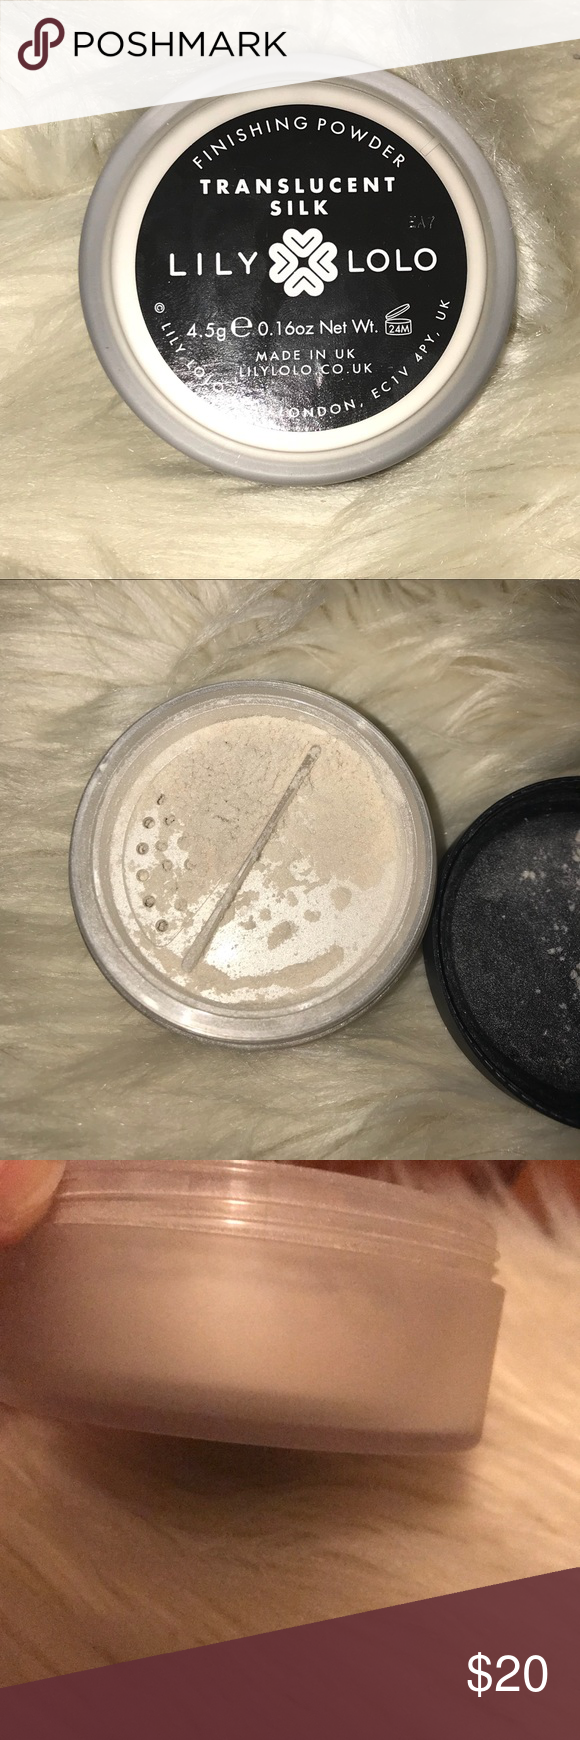 Lily Lolo Translucent silk powder Used a few times. 95% full. Gives a gorgeous, natural sheen to the face. Lily Lolo Makeup Face Powder #lilylolo Lily Lolo Translucent silk powder Used a few times. 95% full. Gives a gorgeous, natural sheen to the face. Lily Lolo Makeup Face Powder #lilylolo Lily Lolo Translucent silk powder Used a few times. 95% full. Gives a gorgeous, natural sheen to the face. Lily Lolo Makeup Face Powder #lilylolo Lily Lolo Translucent silk powder Used a few times. 95% full. #lilylolo